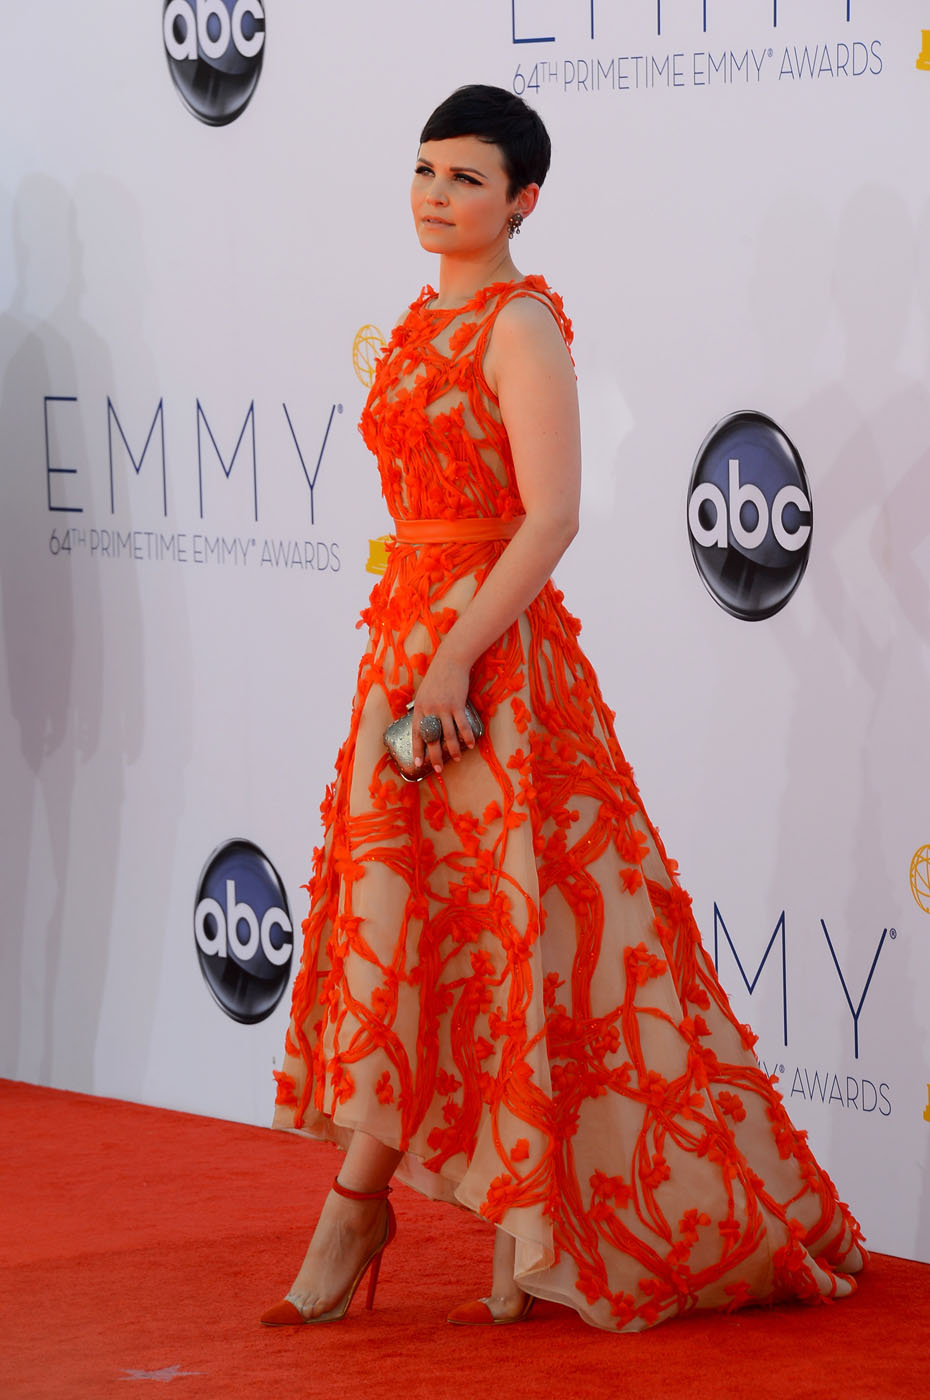 Ginnifer Goodwin - 2012 Emmy Awards, Red Carpet Looks